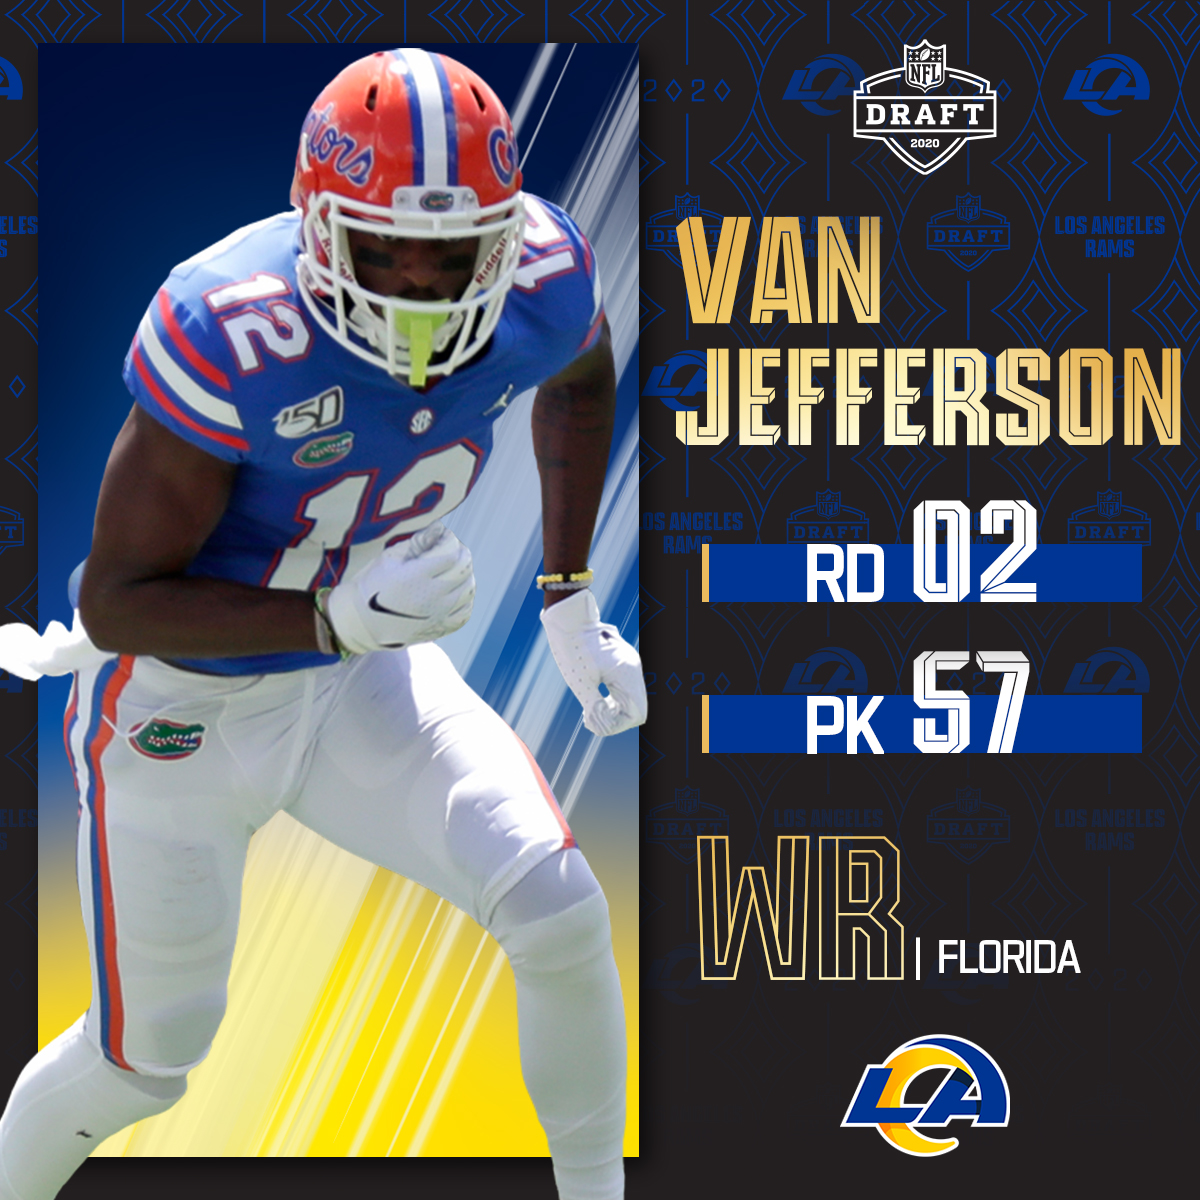 With the No. 57 overall pick, the @RamsNFL select @GatorsFB WR Van Jefferson! 📺: 2020 #NFLDraft on NFLN/ESPN/ABC 📱: bit.ly/2zrlHEG